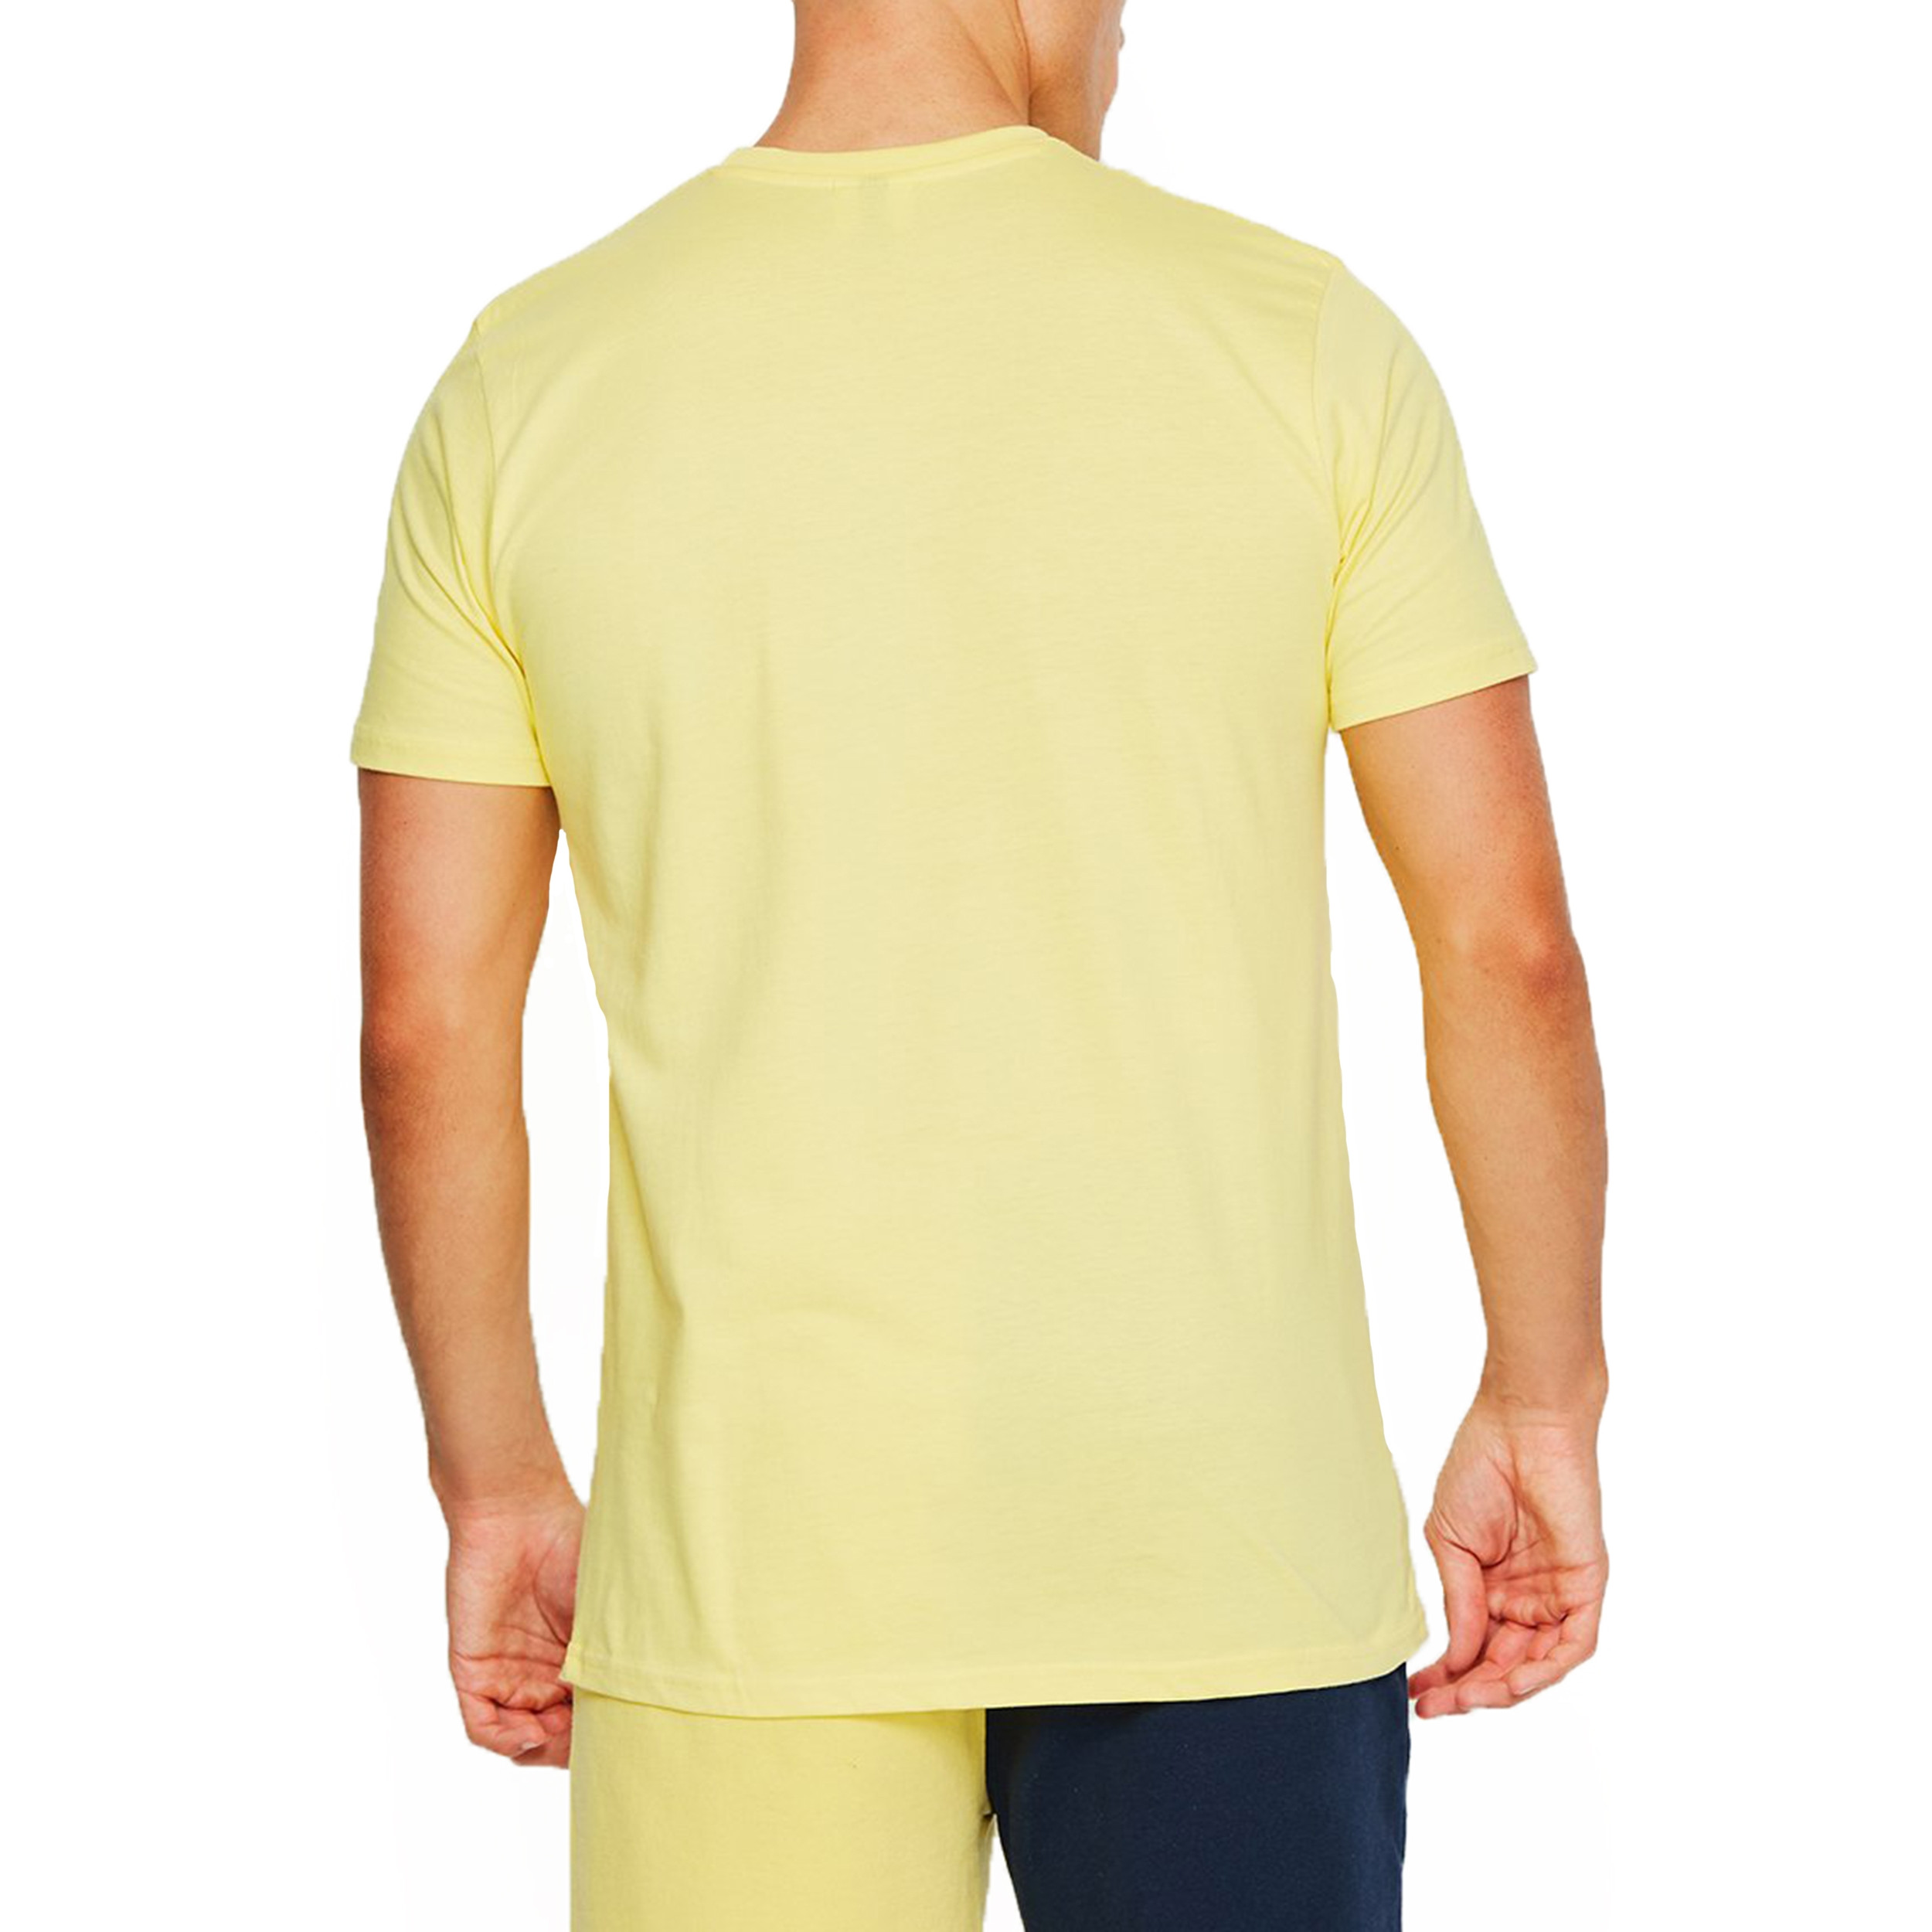 c0792a061 Ellesse Logo T-Shirt Short Sleeve Light Yellow | Jean Scene